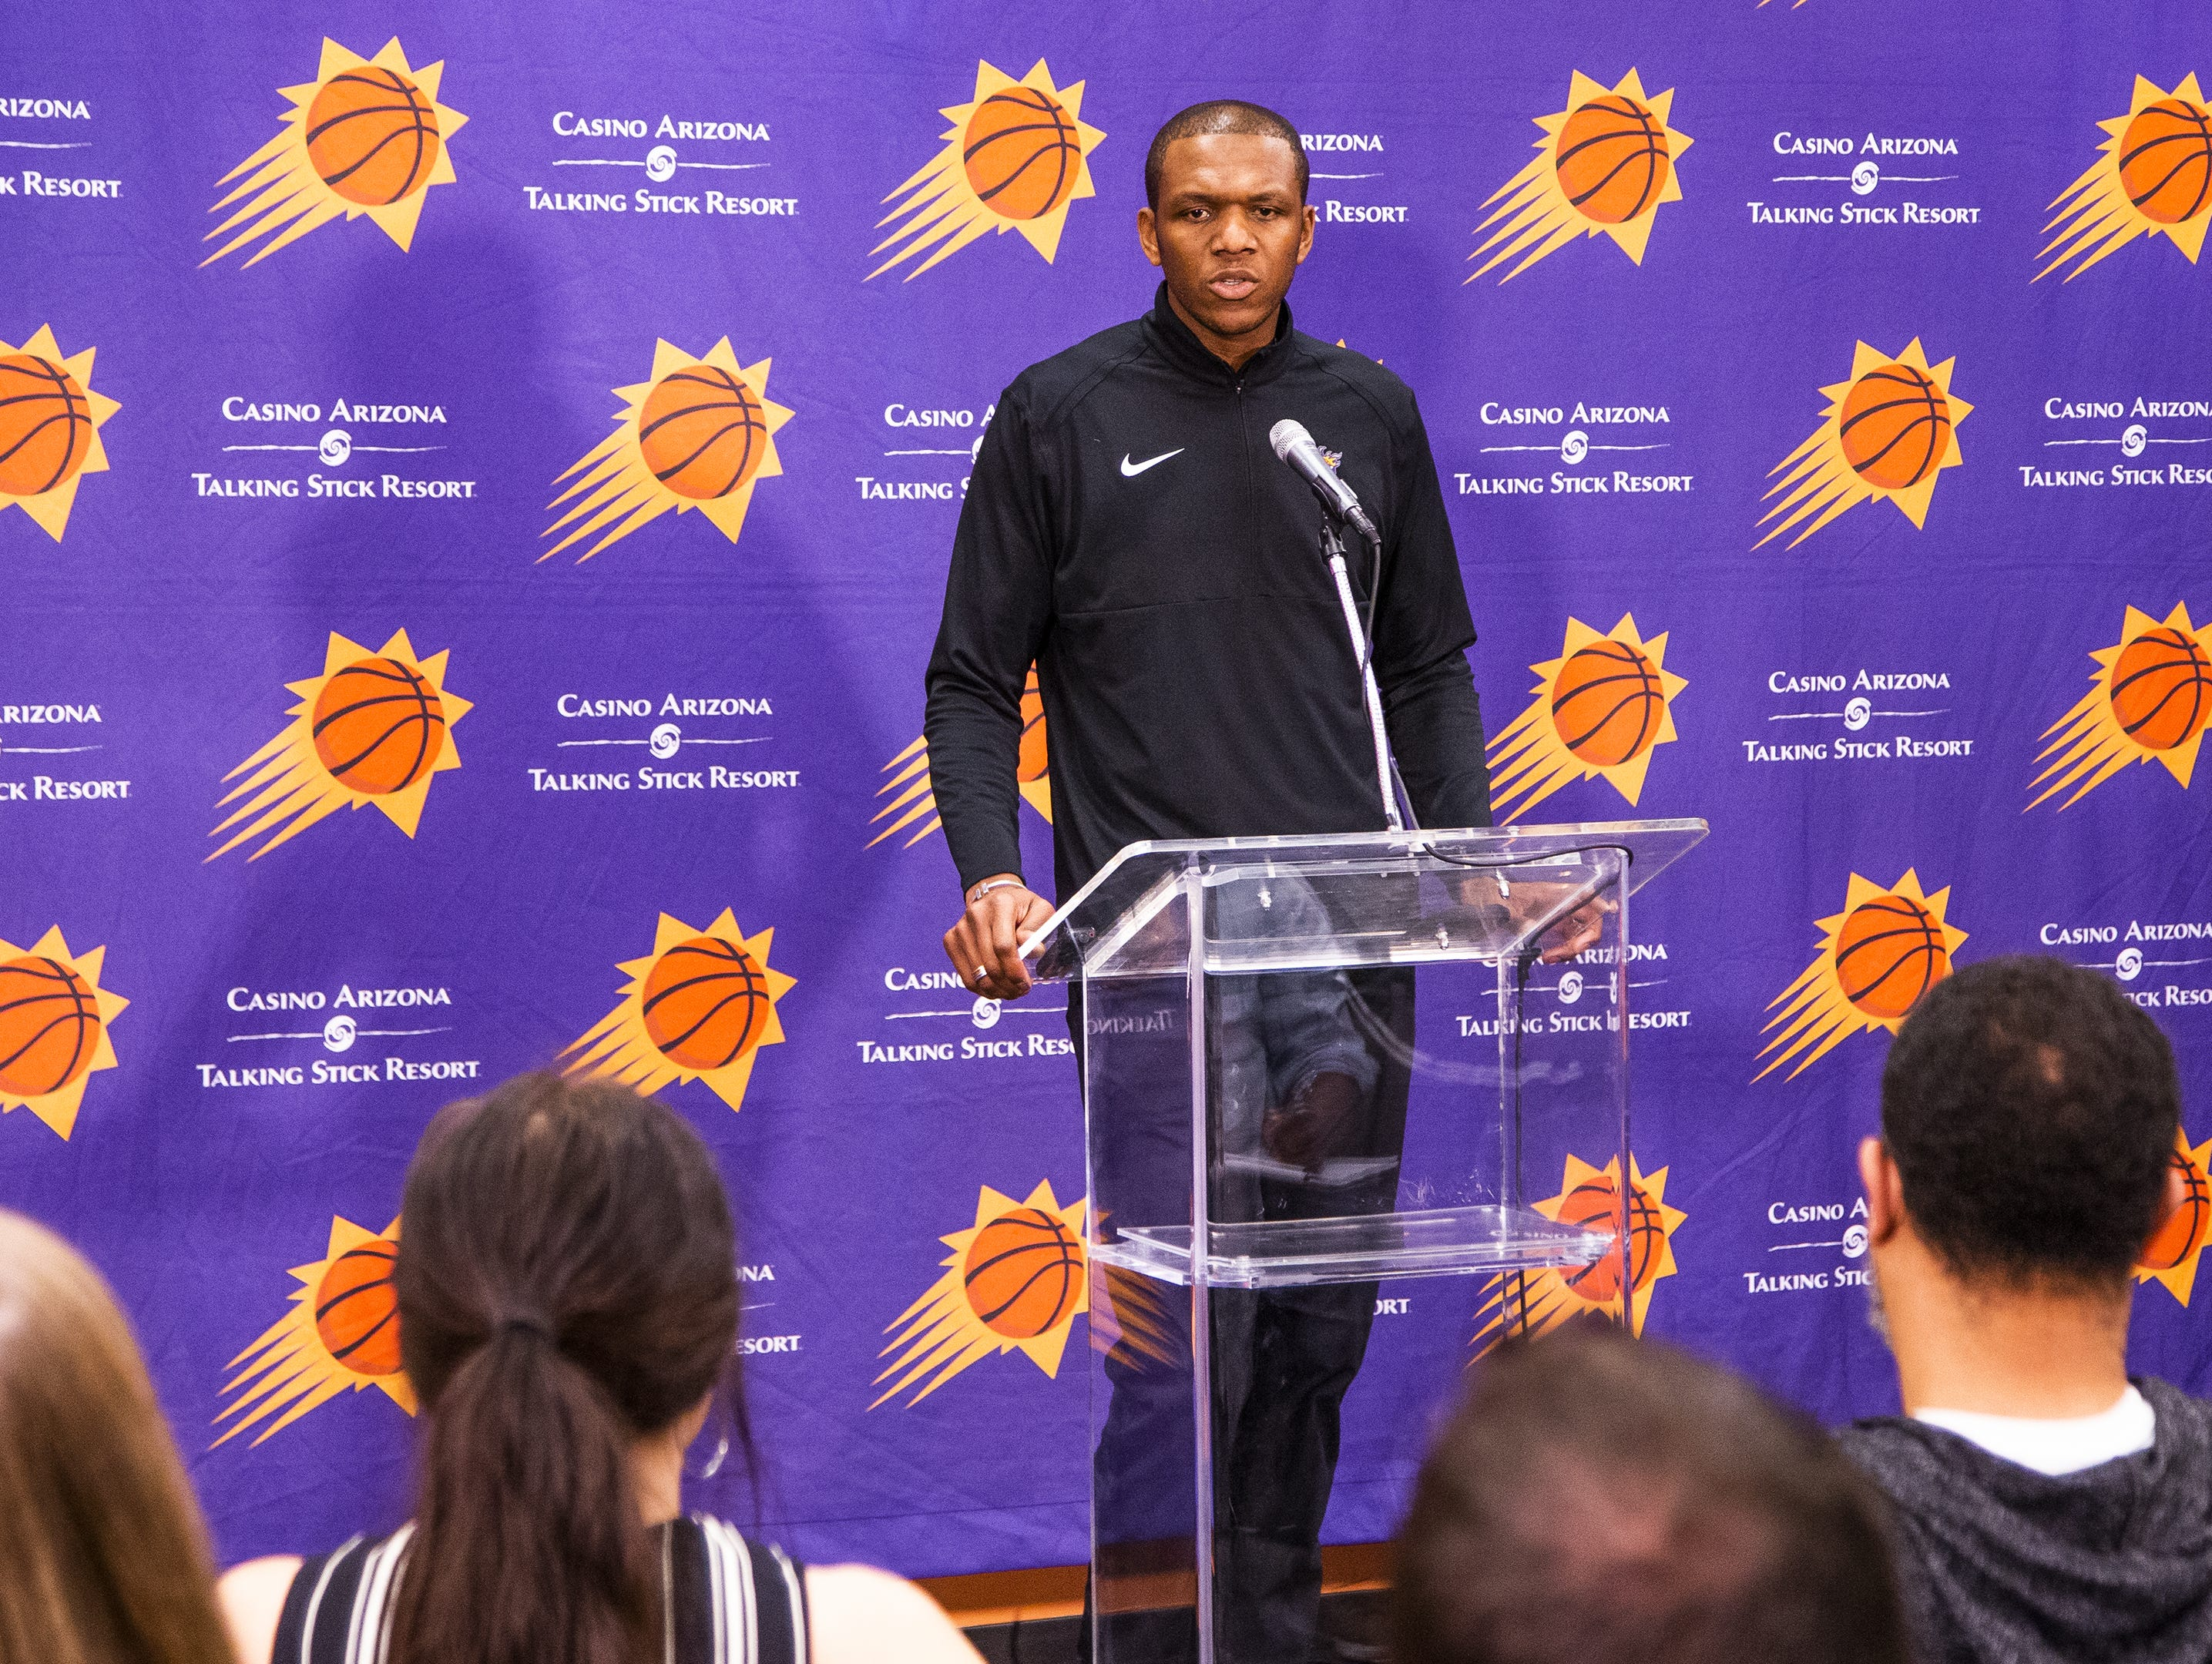 Suns General Manager James Jones answers questions about the search for a new coach.